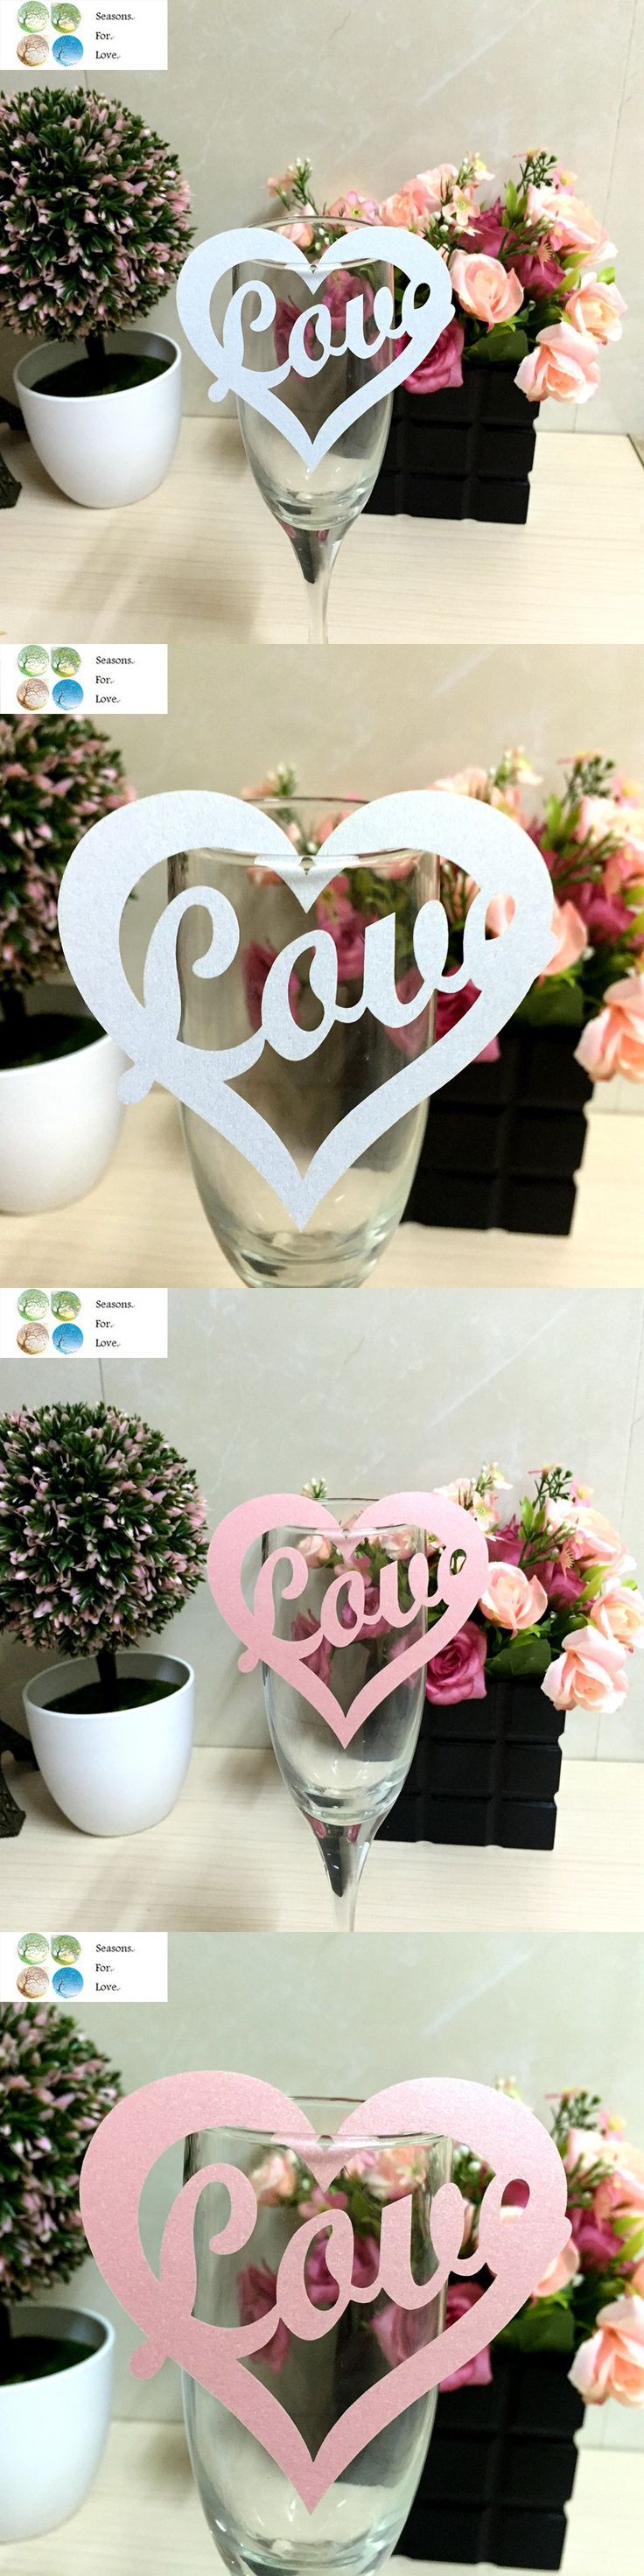 50pcs love heart  laser Cut Paper Place Card wedding favors and gifts Escort Cup Card Wine Glass Card party birthday supplies $6.58